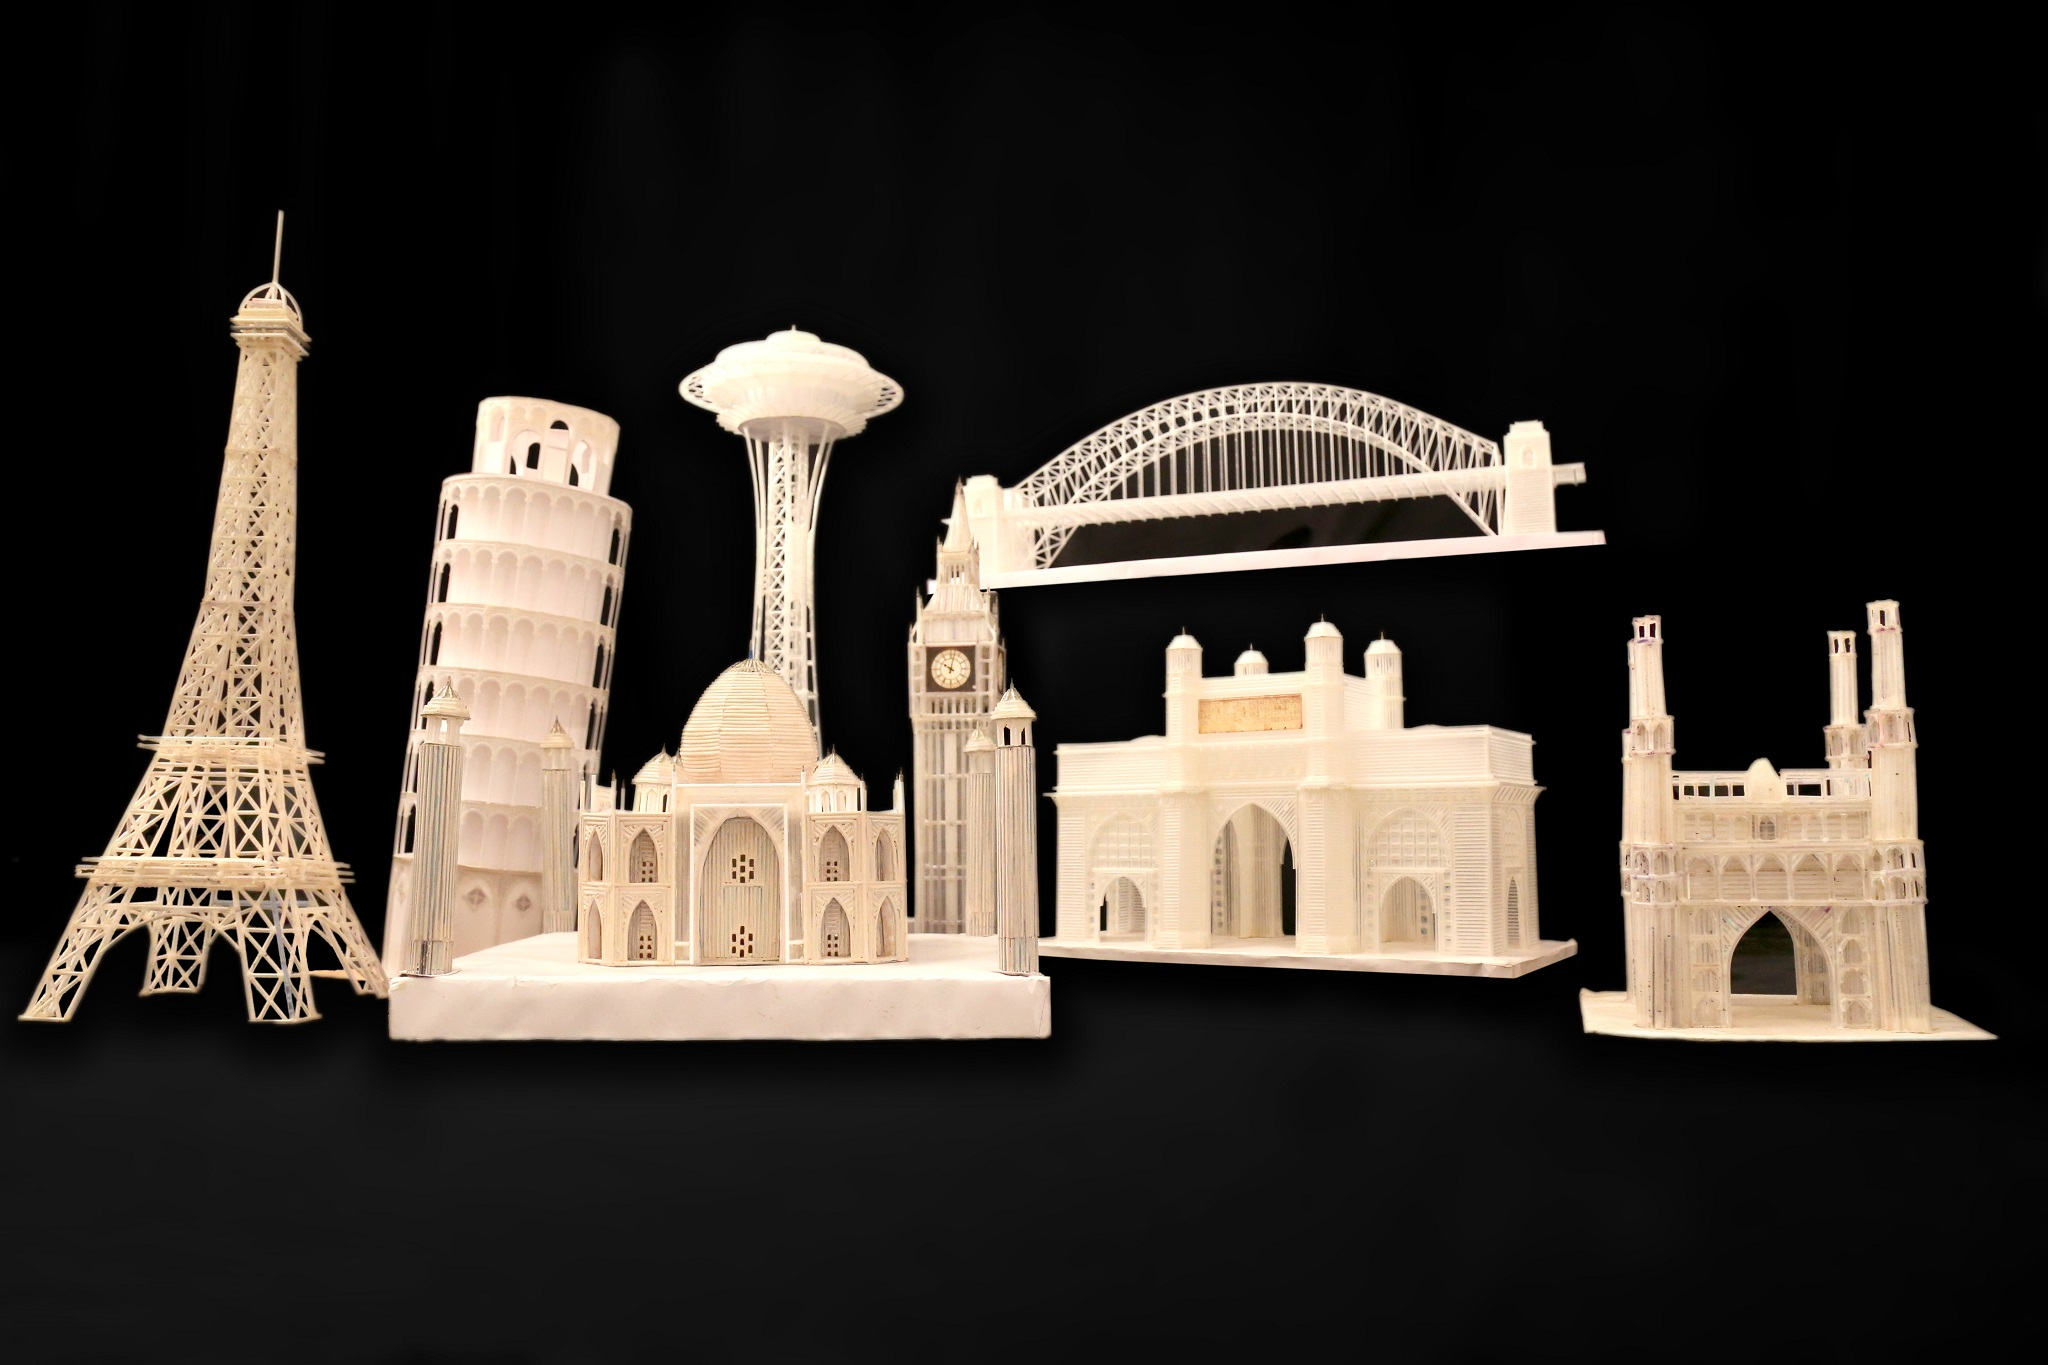 Over 4,000 Empty Pen Refills Went into These Miniature Landmarks